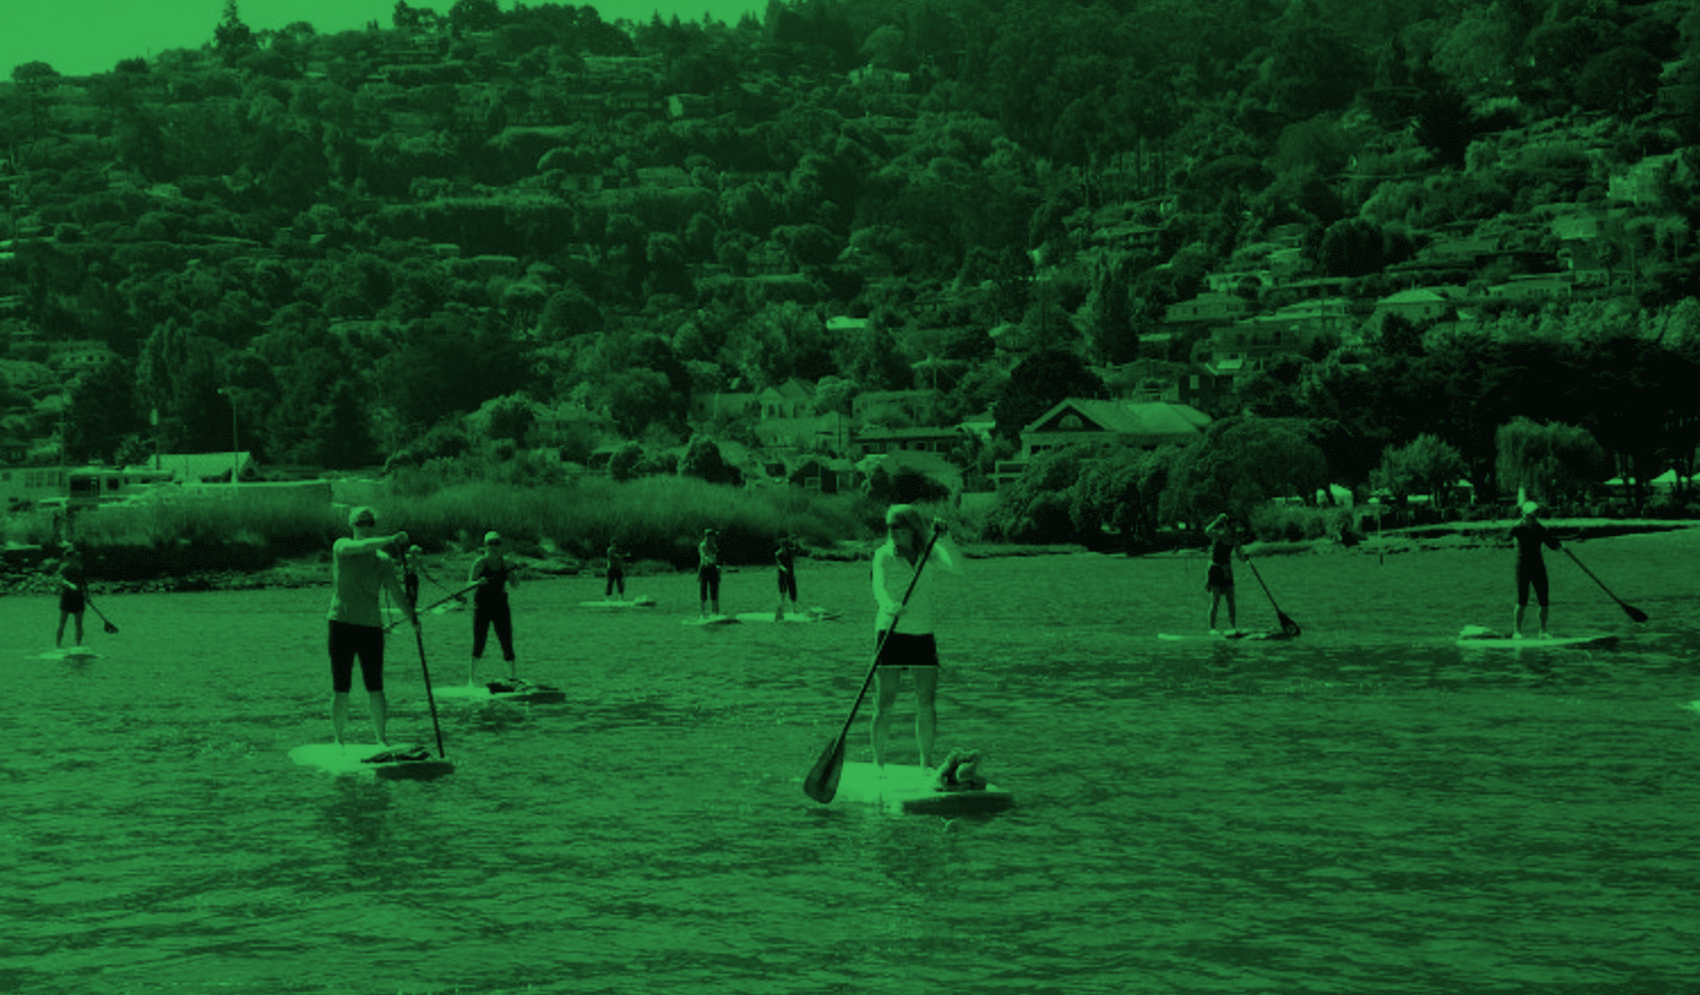 Stand-up Paddle Boating